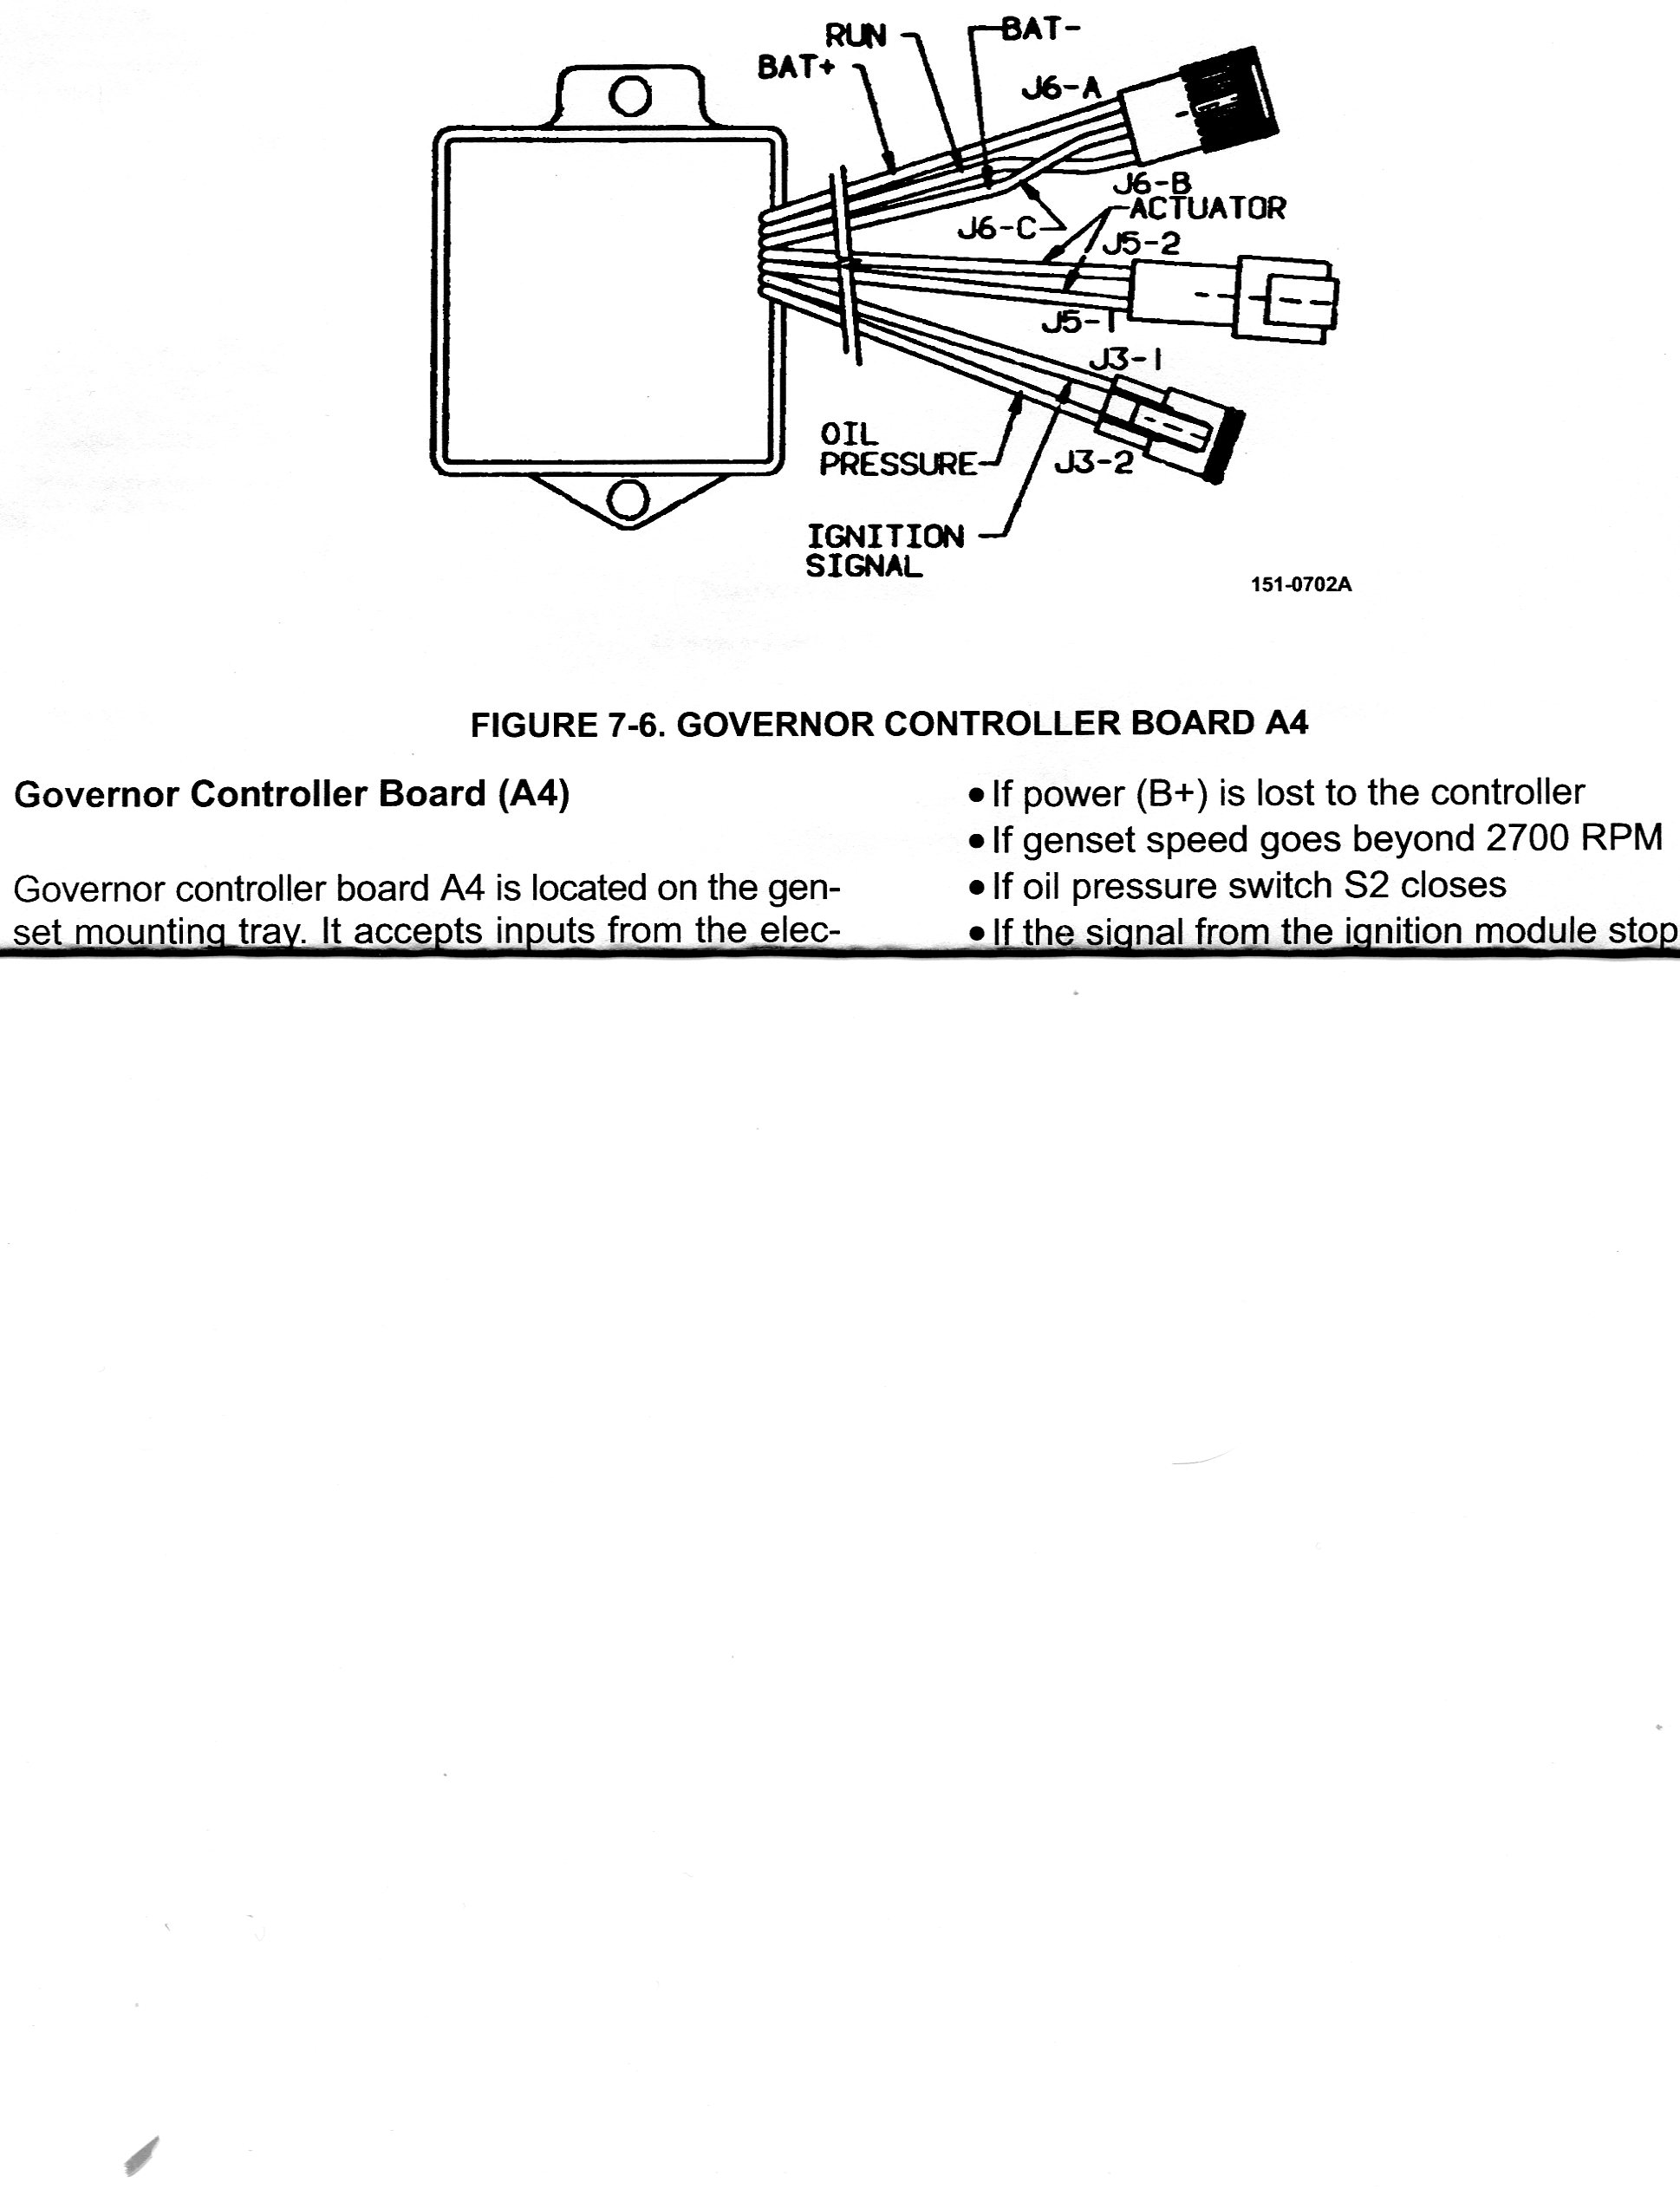 2010 05 05_143530_Governor_controller001 diagrams 12001572 genset wiring diagram diesel generator onan 5500 marquis gold generator wiring diagram at creativeand.co